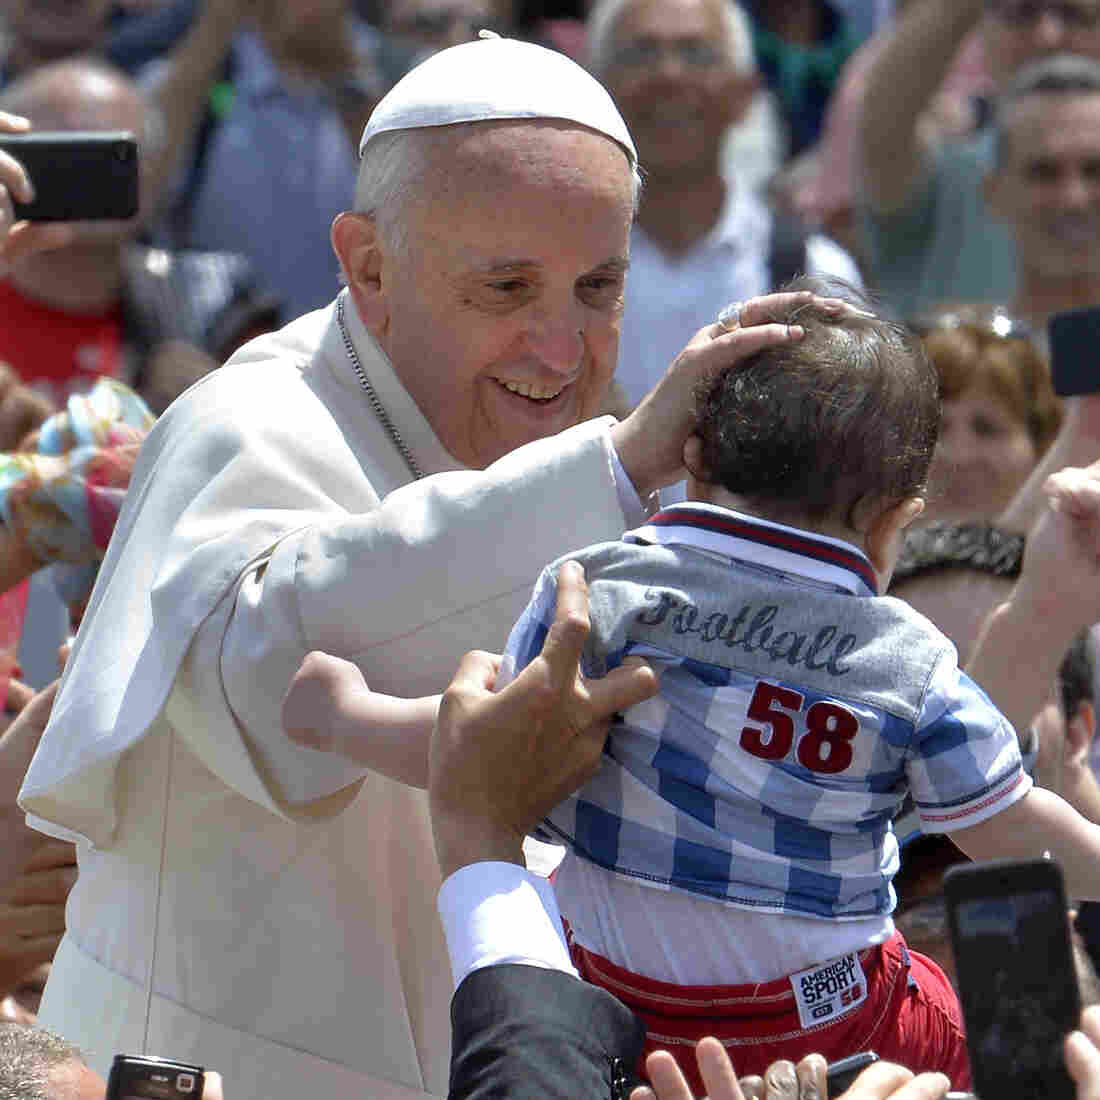 Pope Francis blesses a child Sunday after the Holy Mass at St. Peter's Square, at the Vatican.